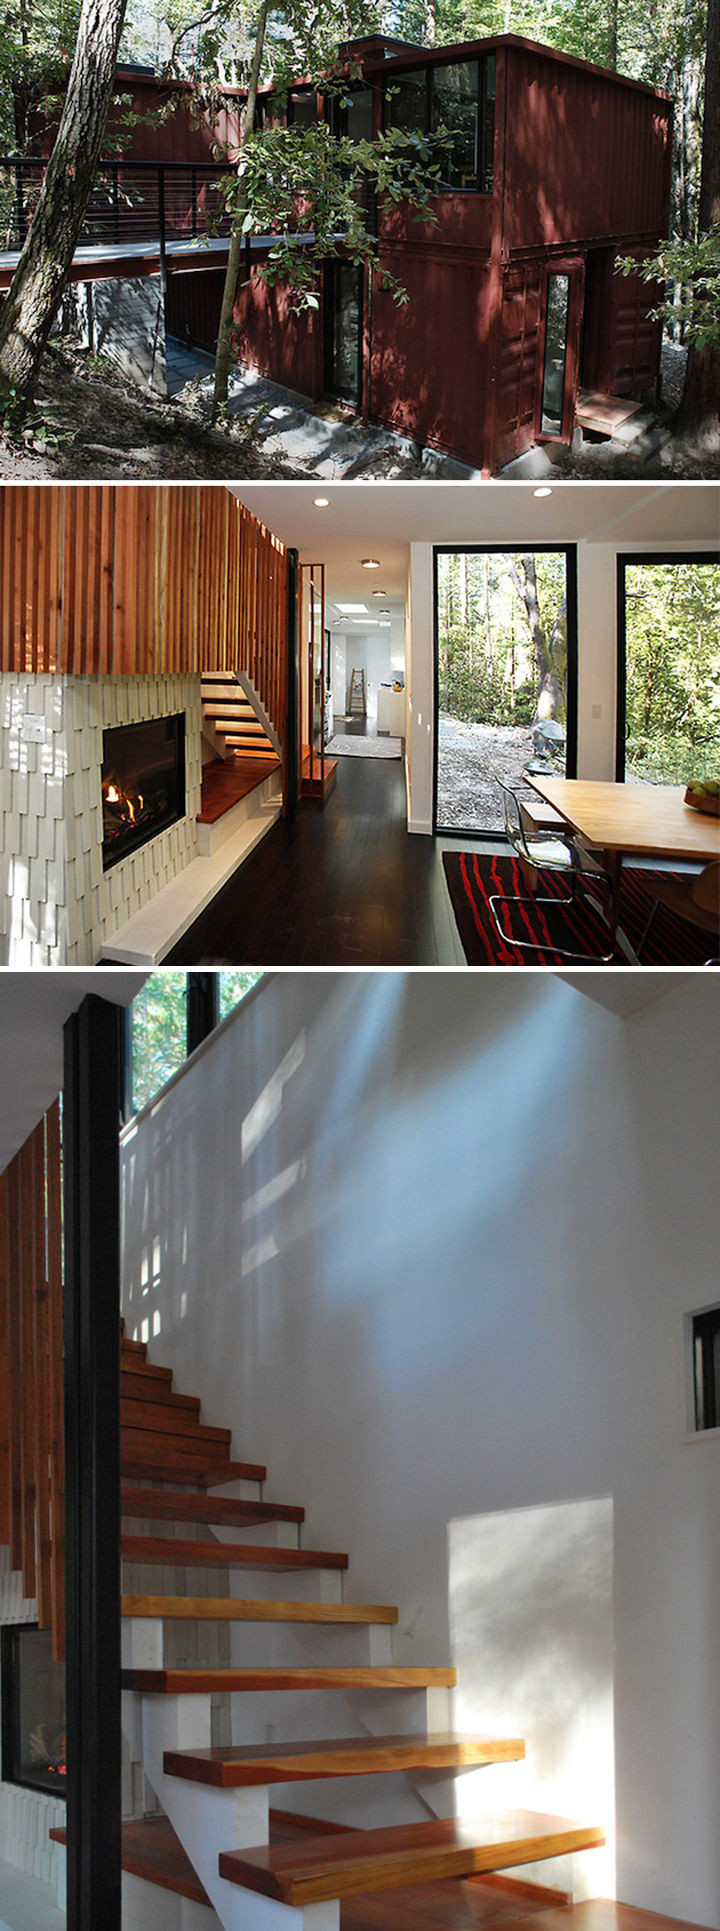 10 Gorgeous Shipping Container Homes - Six Oaks was designed by David Fenster of Modulus and features 1,200 square feet of living space.